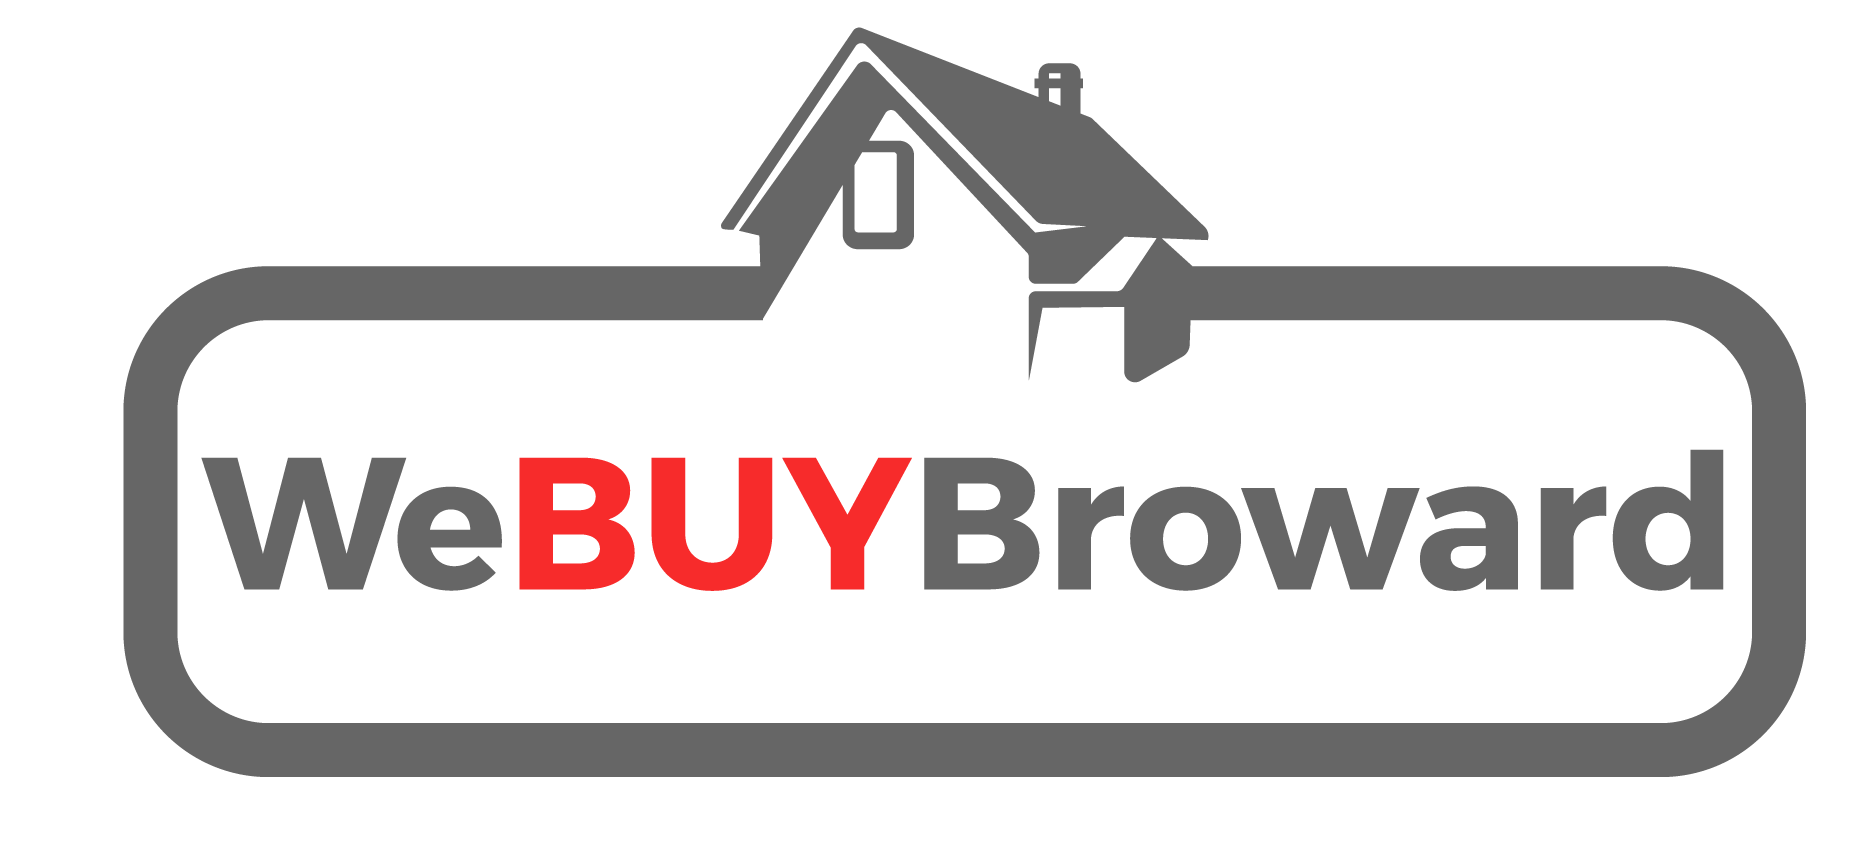 How to Find Cash Home Buyers - We Buy Broward